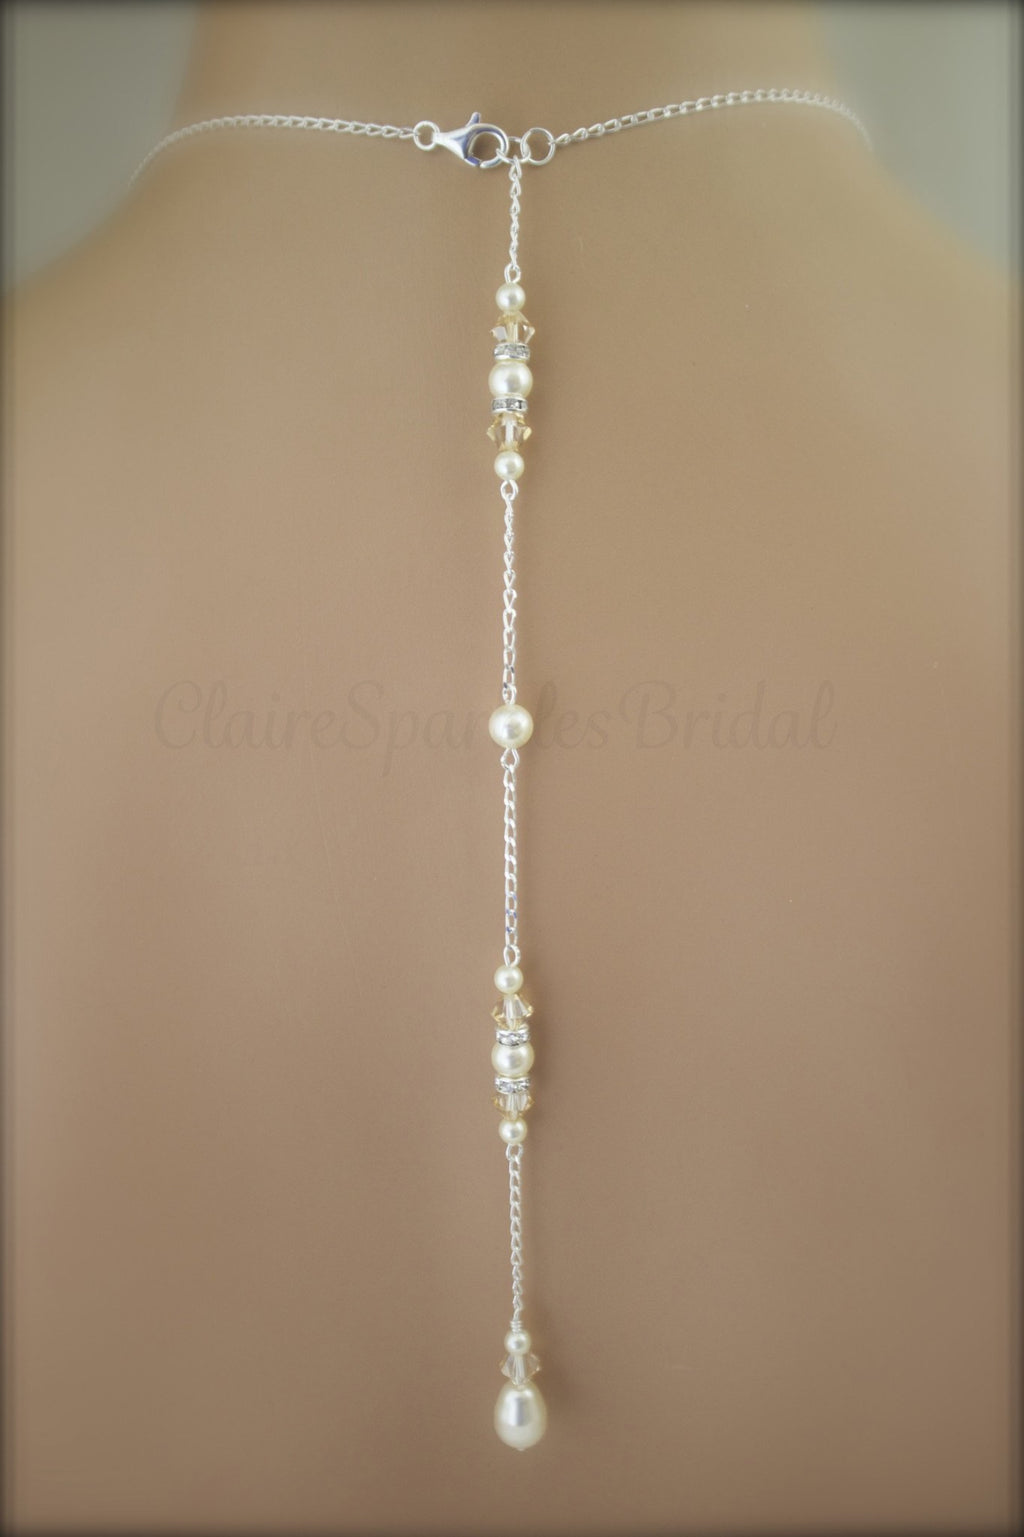 Bridal Backdrop Necklace Wedding jewelry Ivory Pearl Bridal Jewelry - Clairesbridal - 1